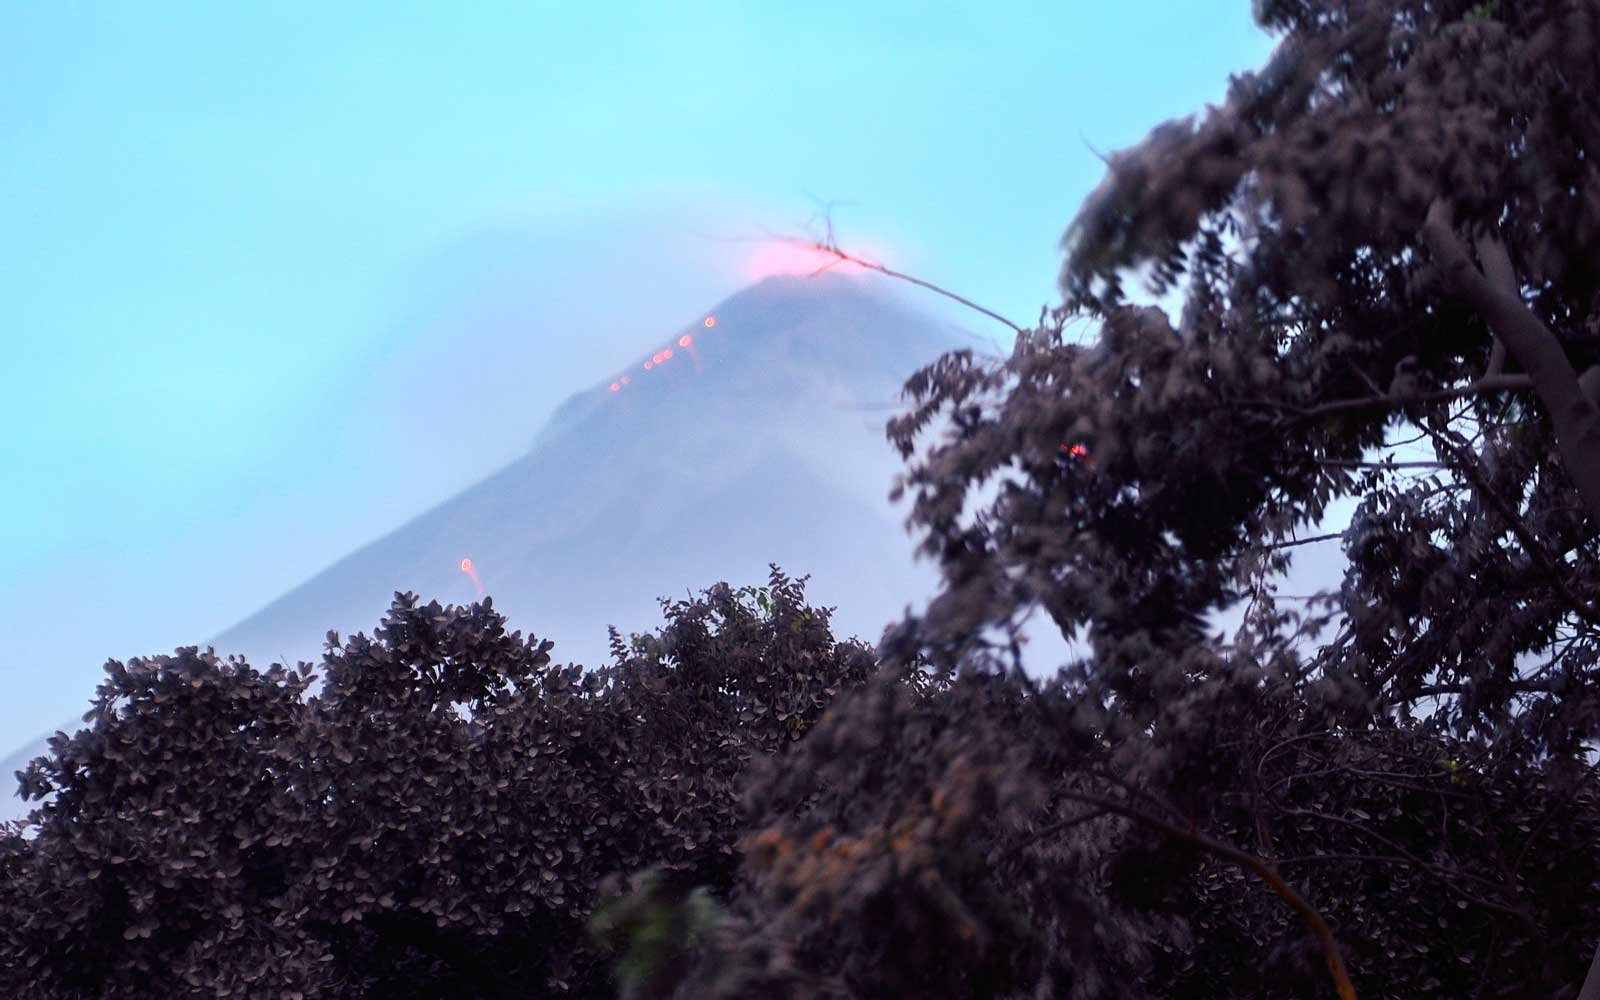 The Fuego Volcano in eruption, seen from Los Lotes, Rodeo, in Escuintla about 35km south of Guatemala City, on June 4, 2018.